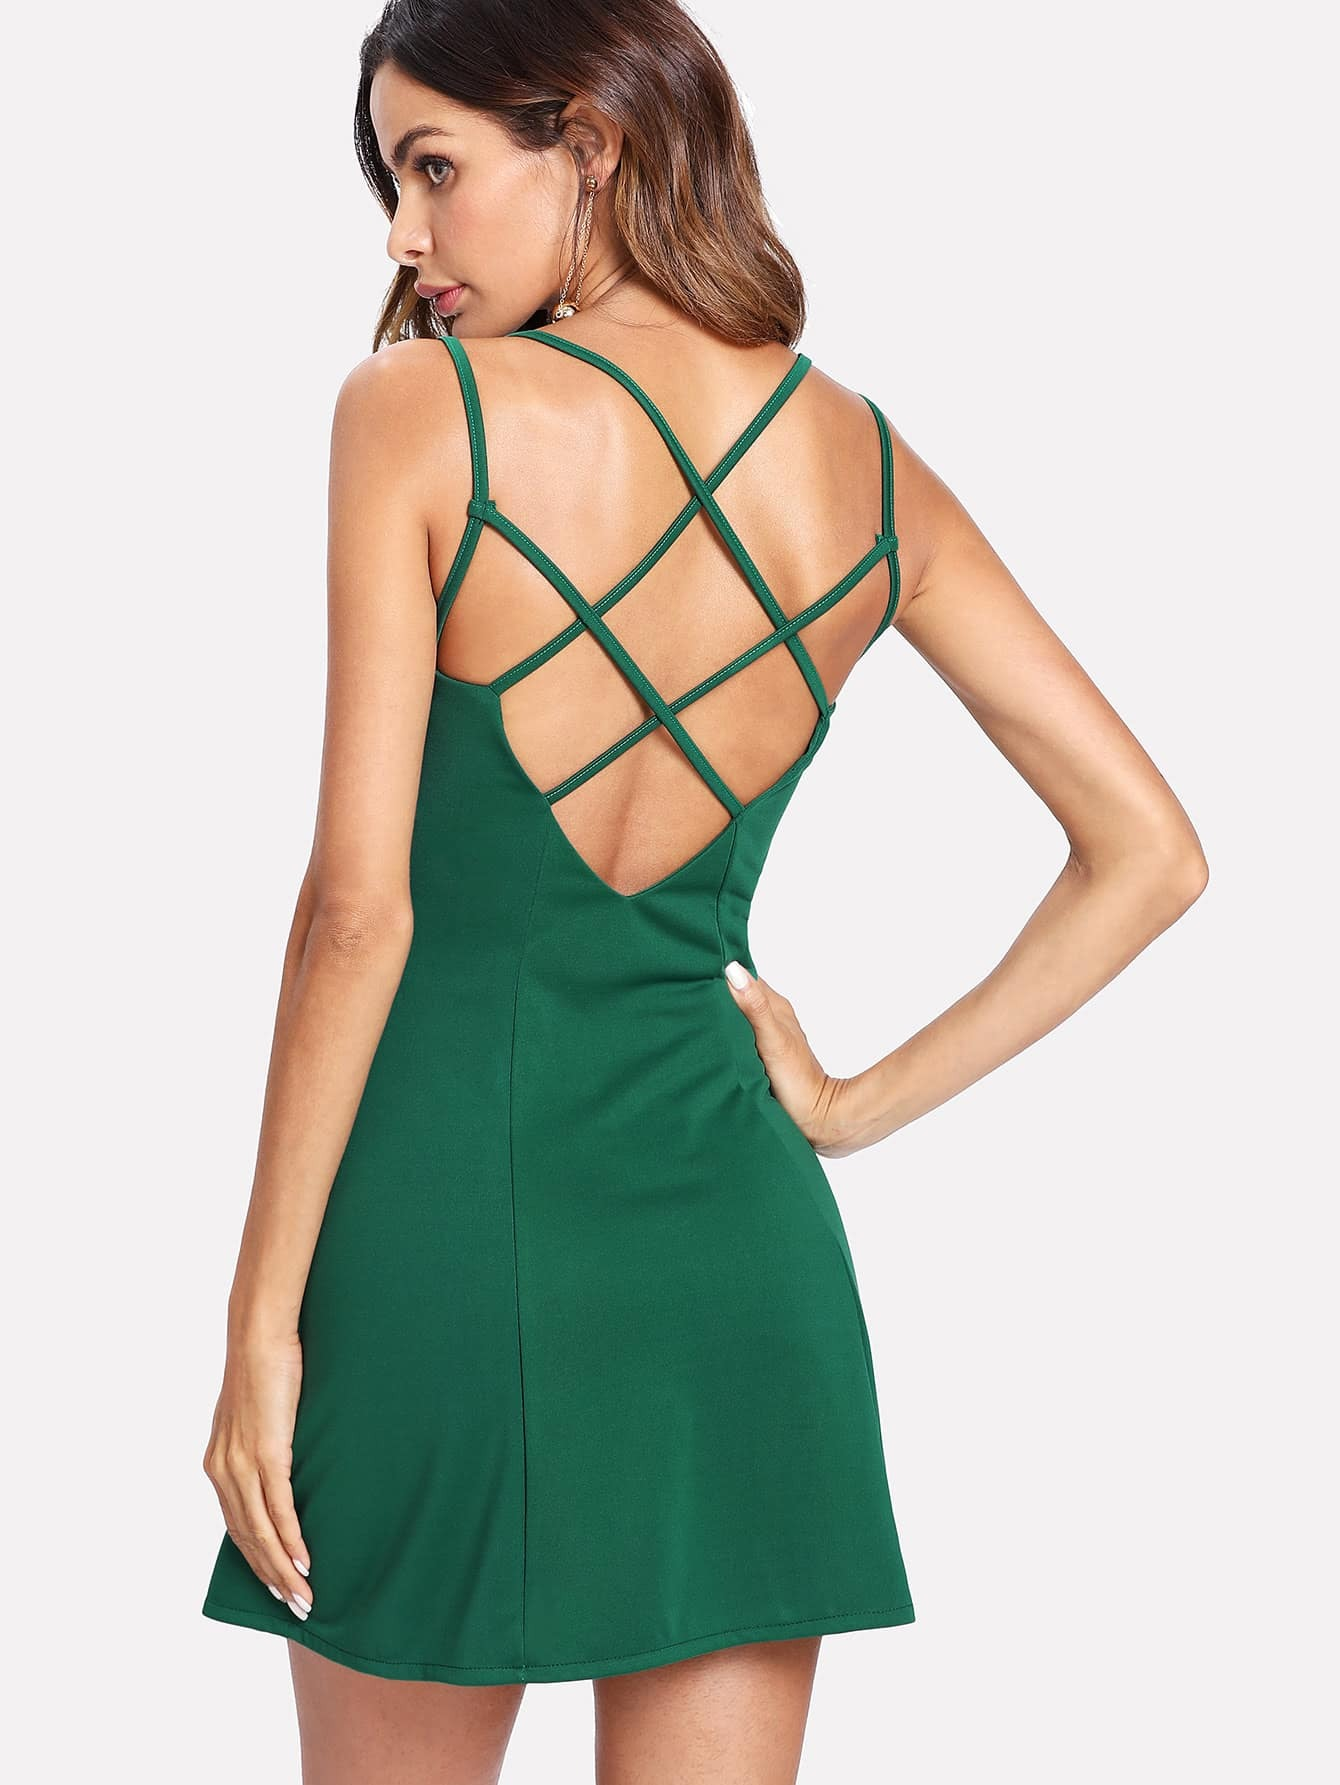 Criss Cross Back Cami Dress criss cross lace up open back cami dress